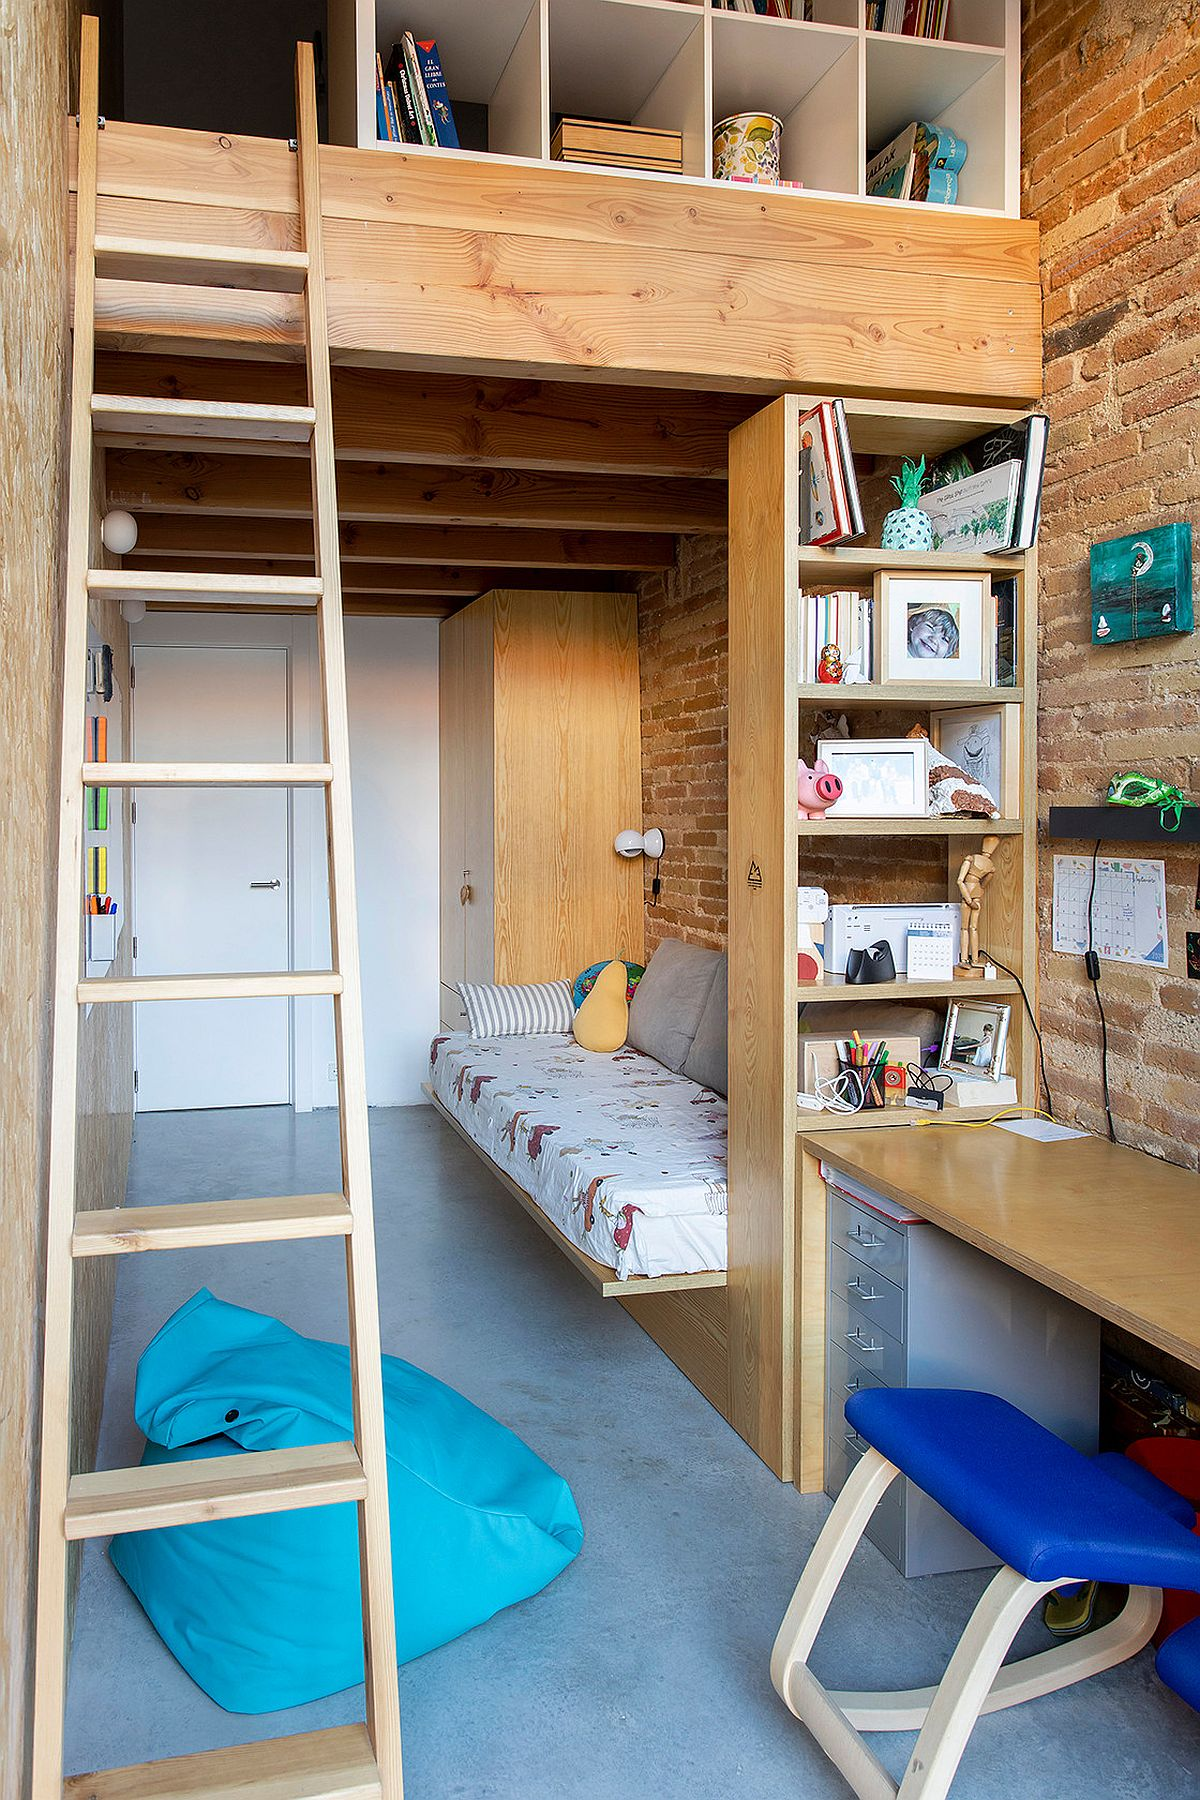 Space-savvy-industrial-style-bedroom-with-brick-walls-concrete-floor-and-a-loft-level-94412